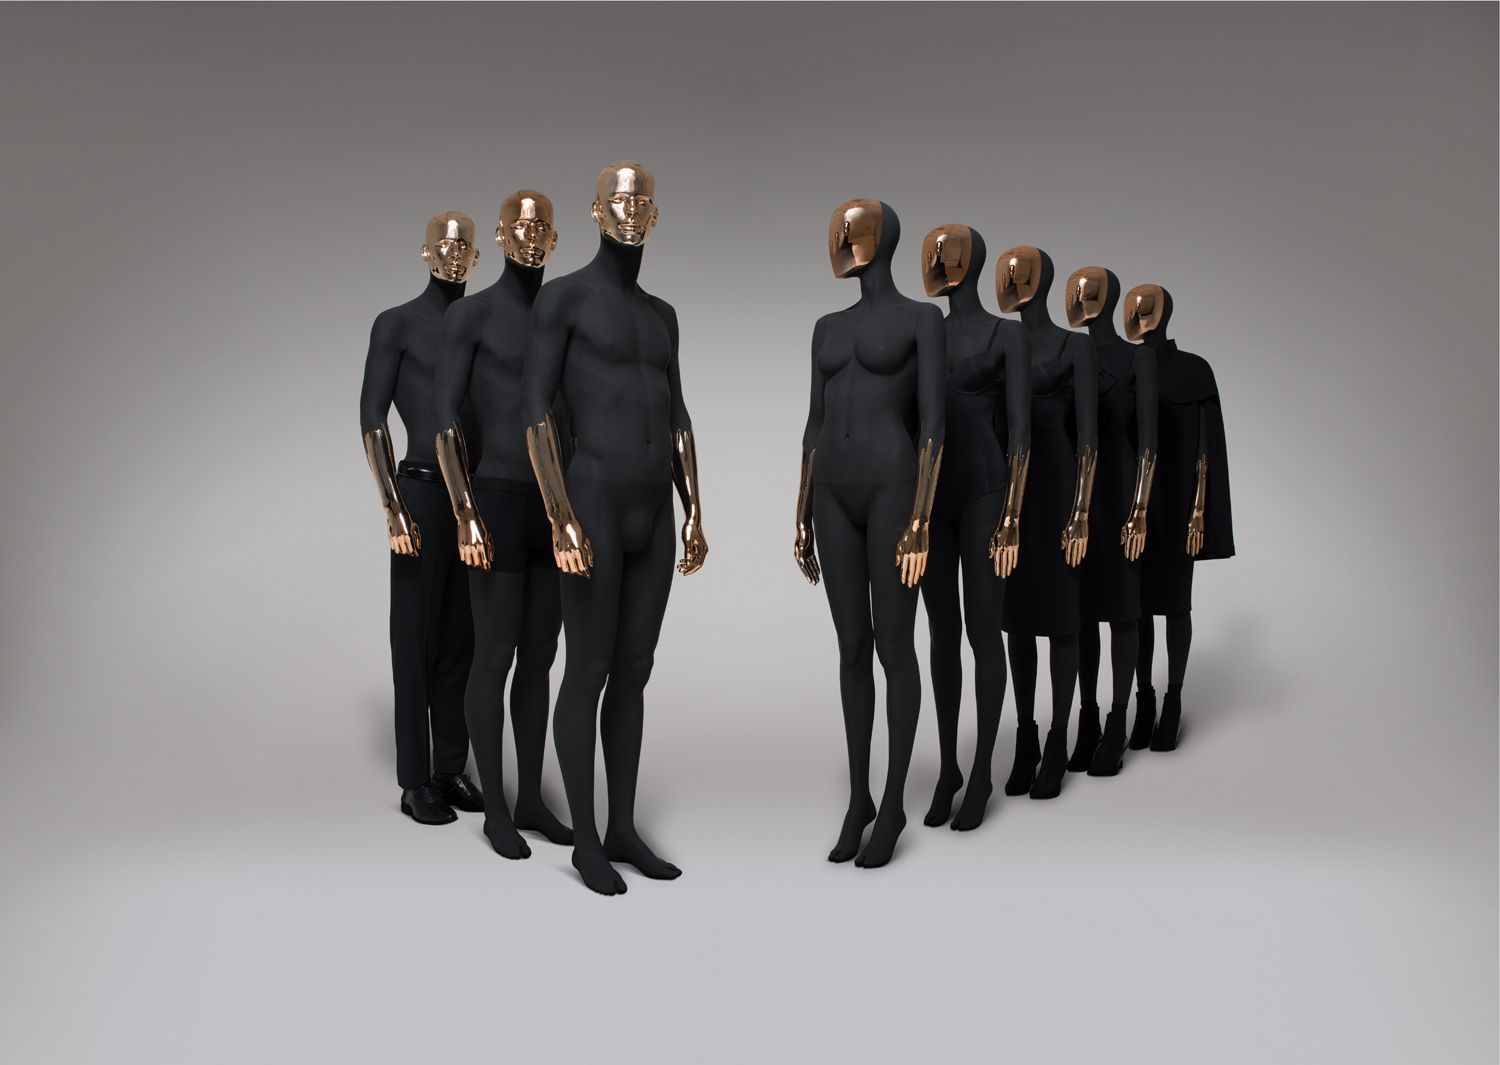 Ihram Kids For Sale Dubai: PARIS BLACK COPPER BY HANS BOODT MANNEQUINS